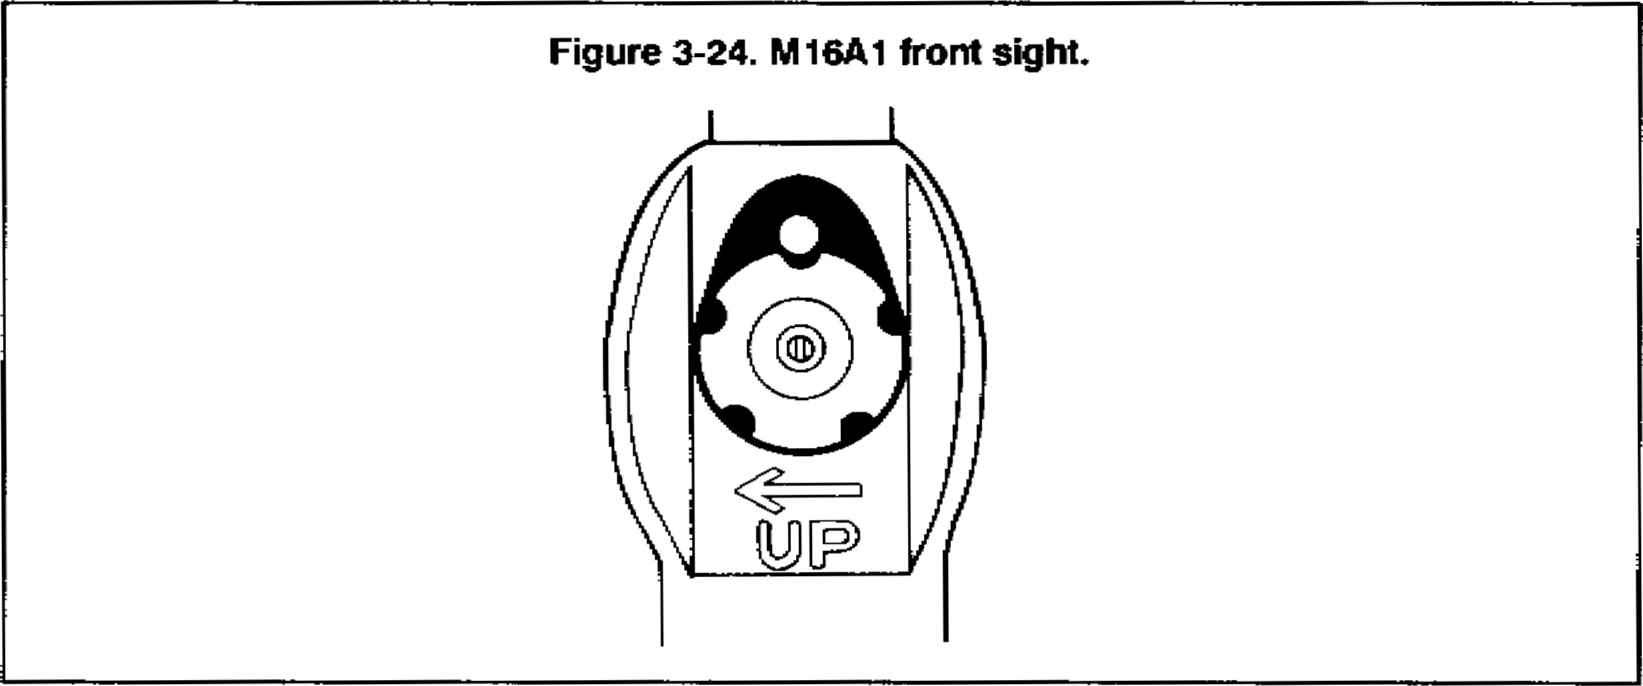 M16a1 Rear Sight